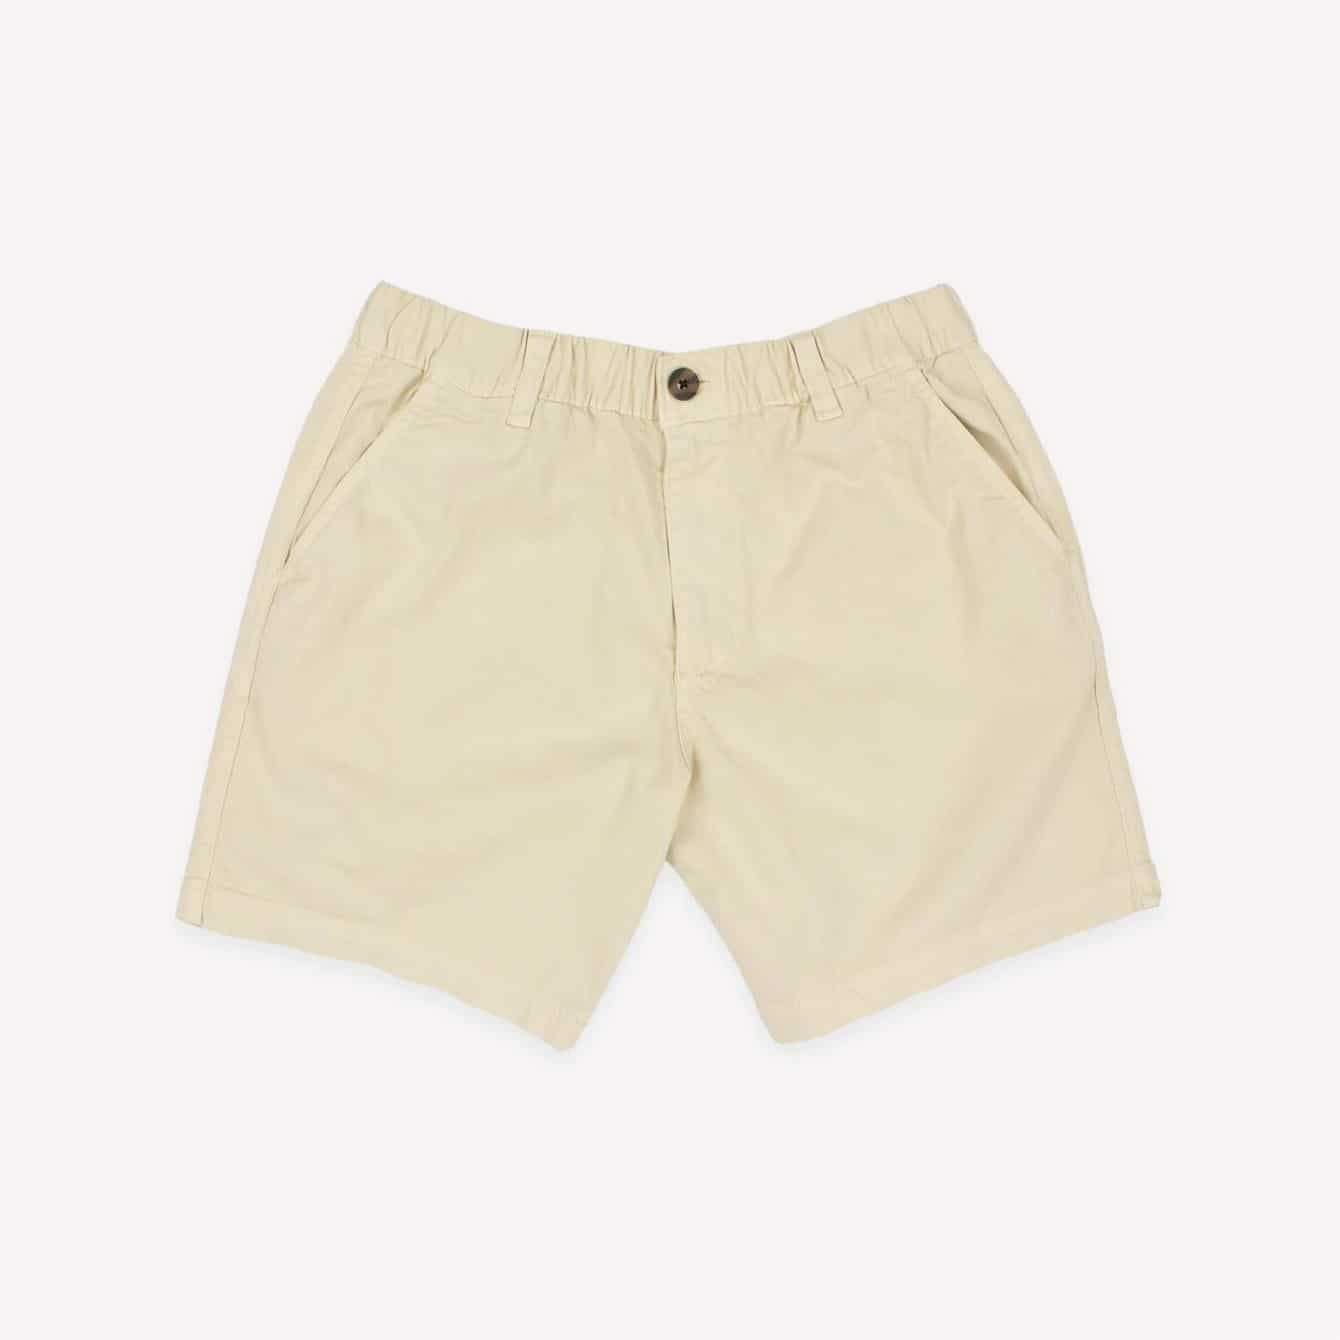 Bearbottom Stretch Chino Shorts e1593079909310